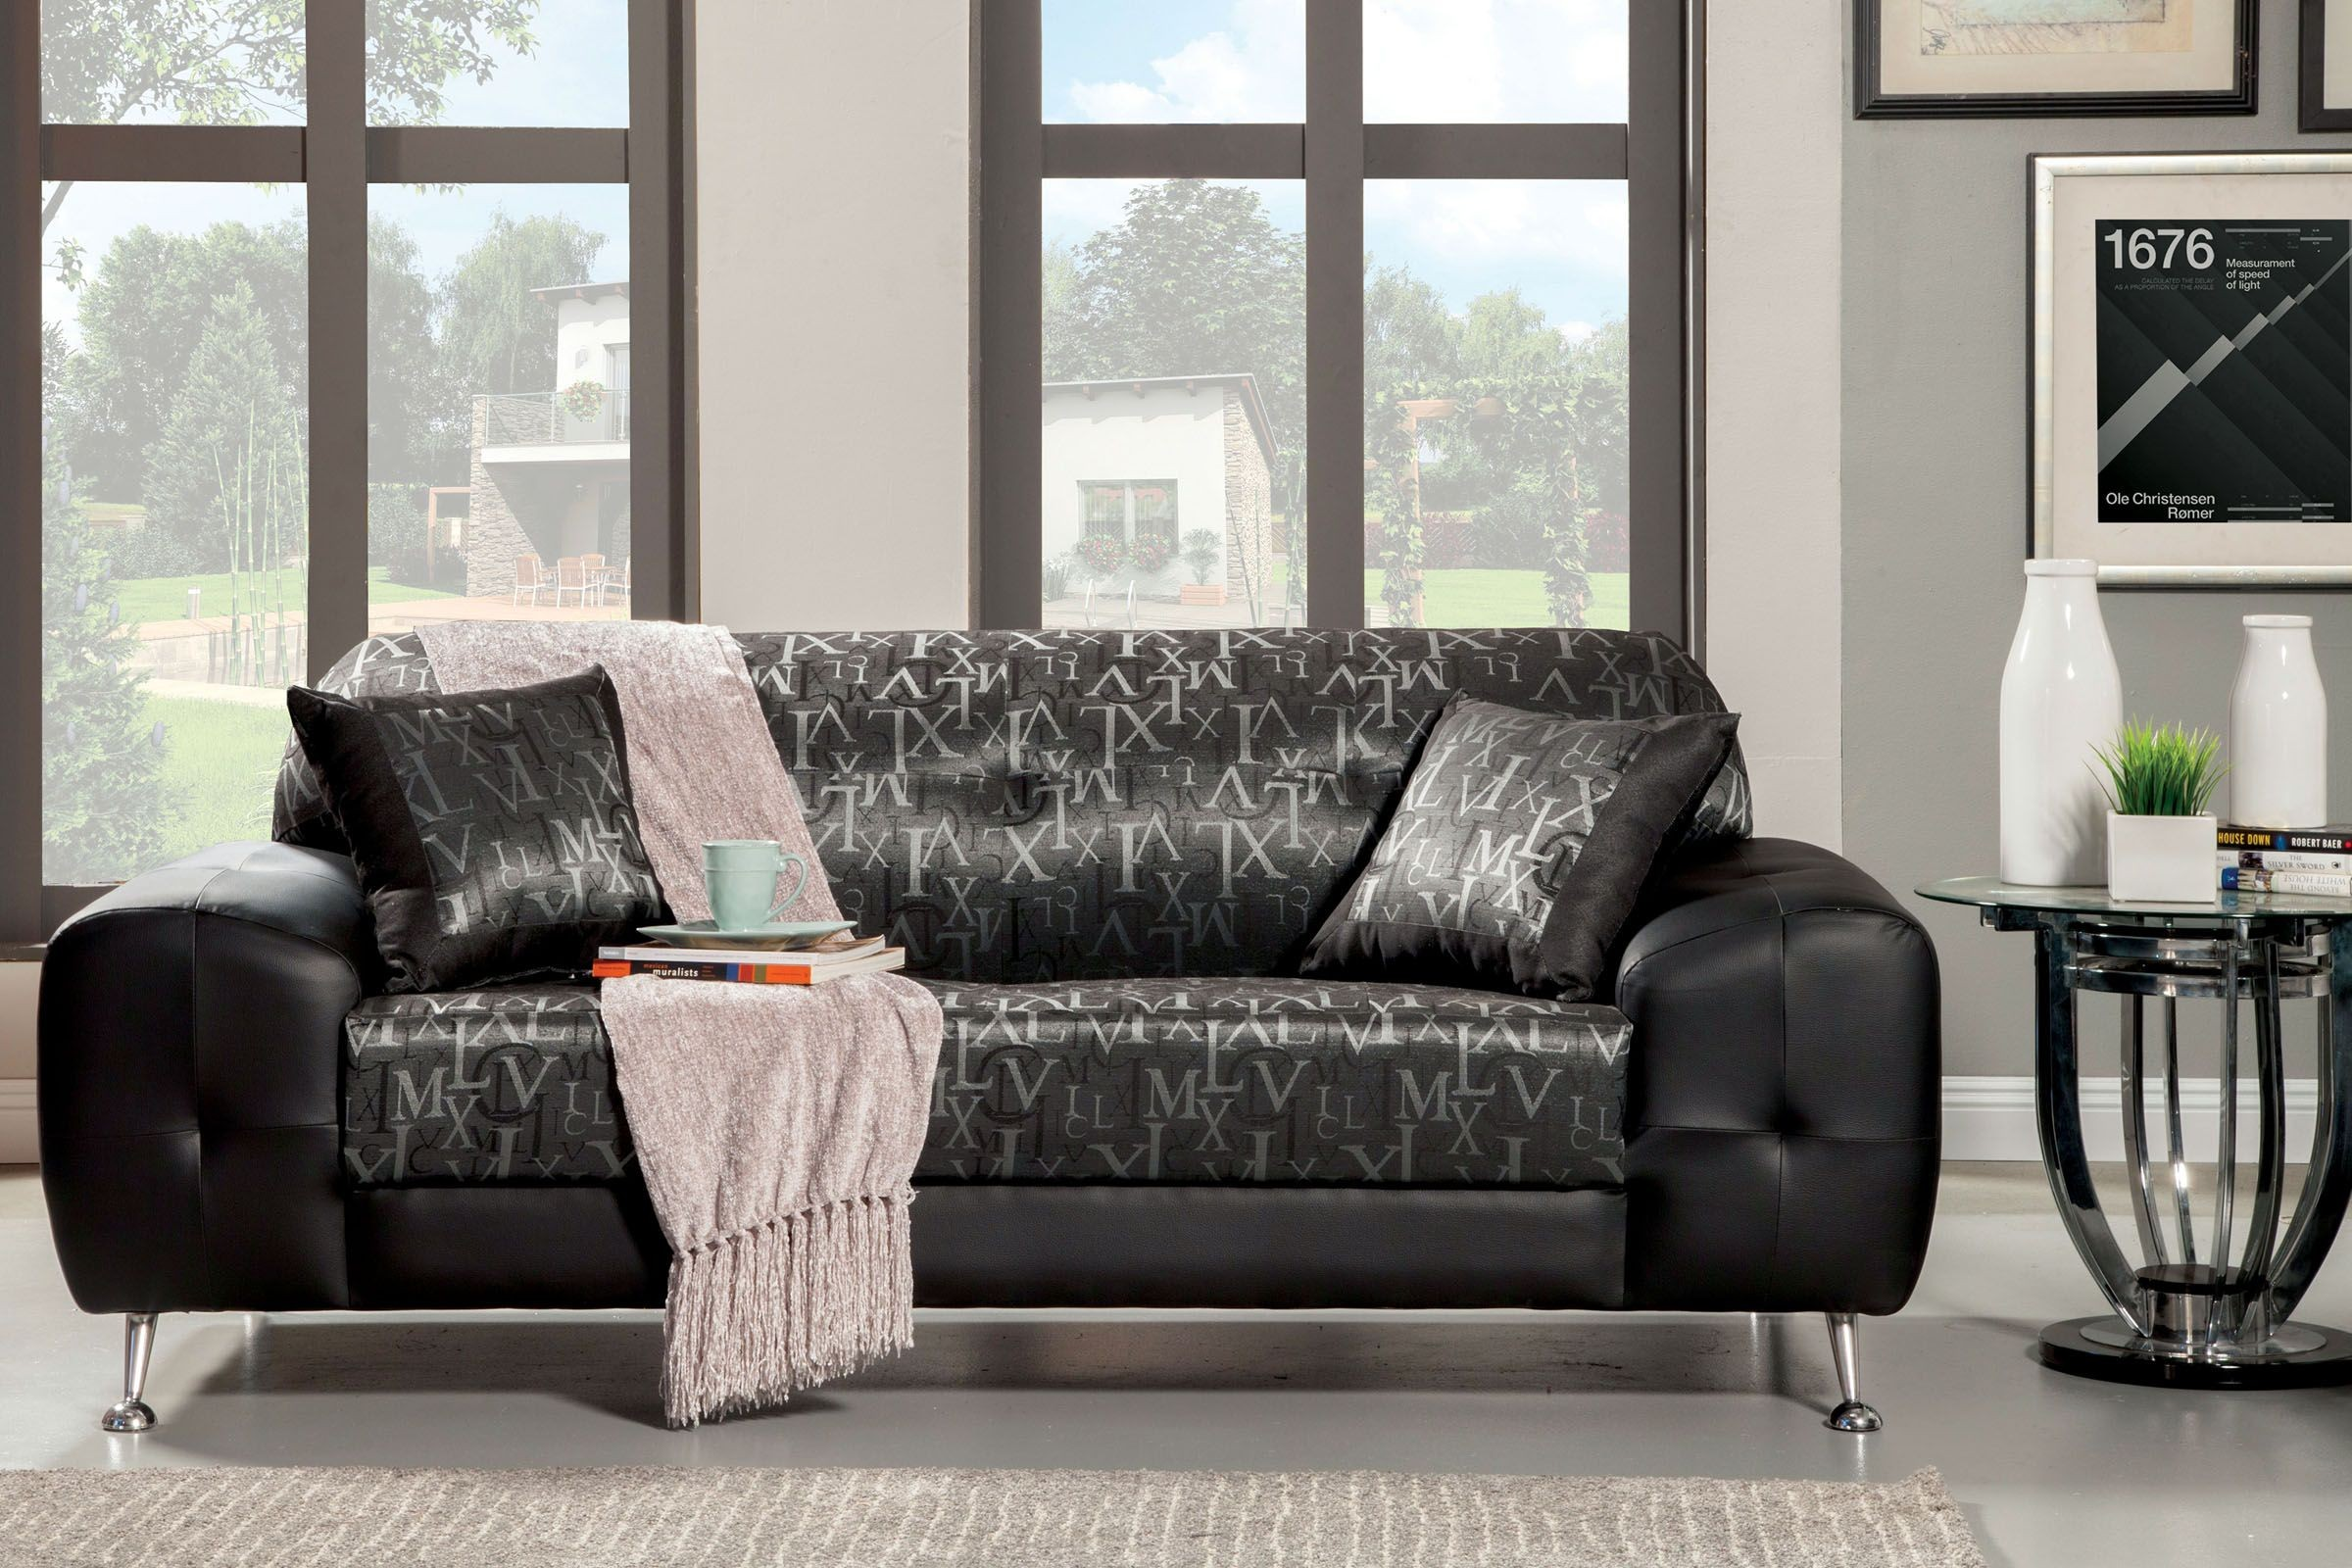 Avdira silver typographic fabric living room set from furniture of america sm6063 sf coleman - Silver living room furniture ...